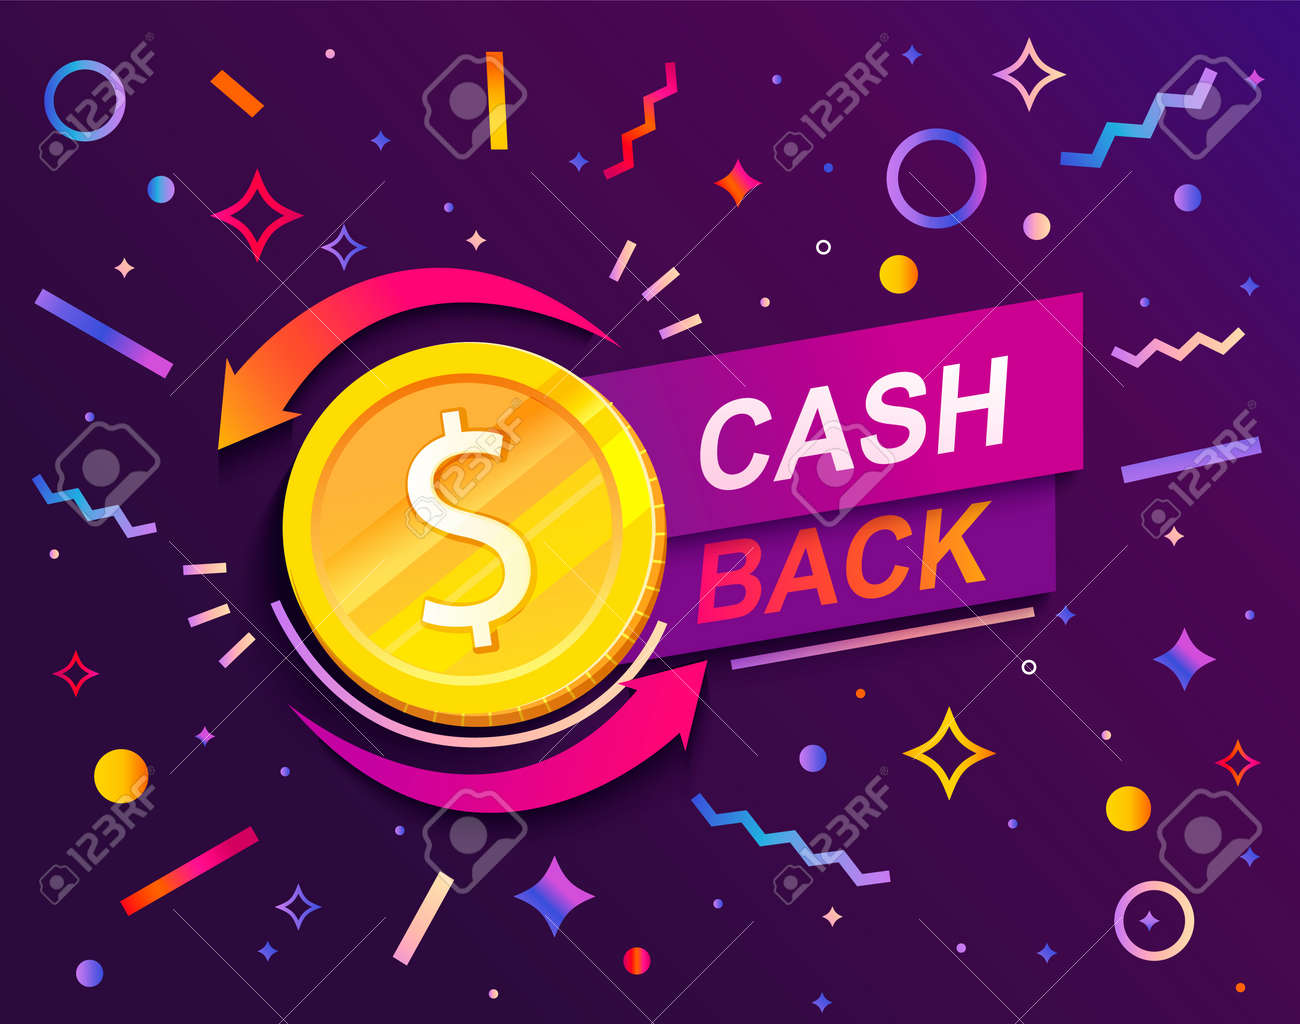 Cash back advertise banner with promo of refund. - 169501036